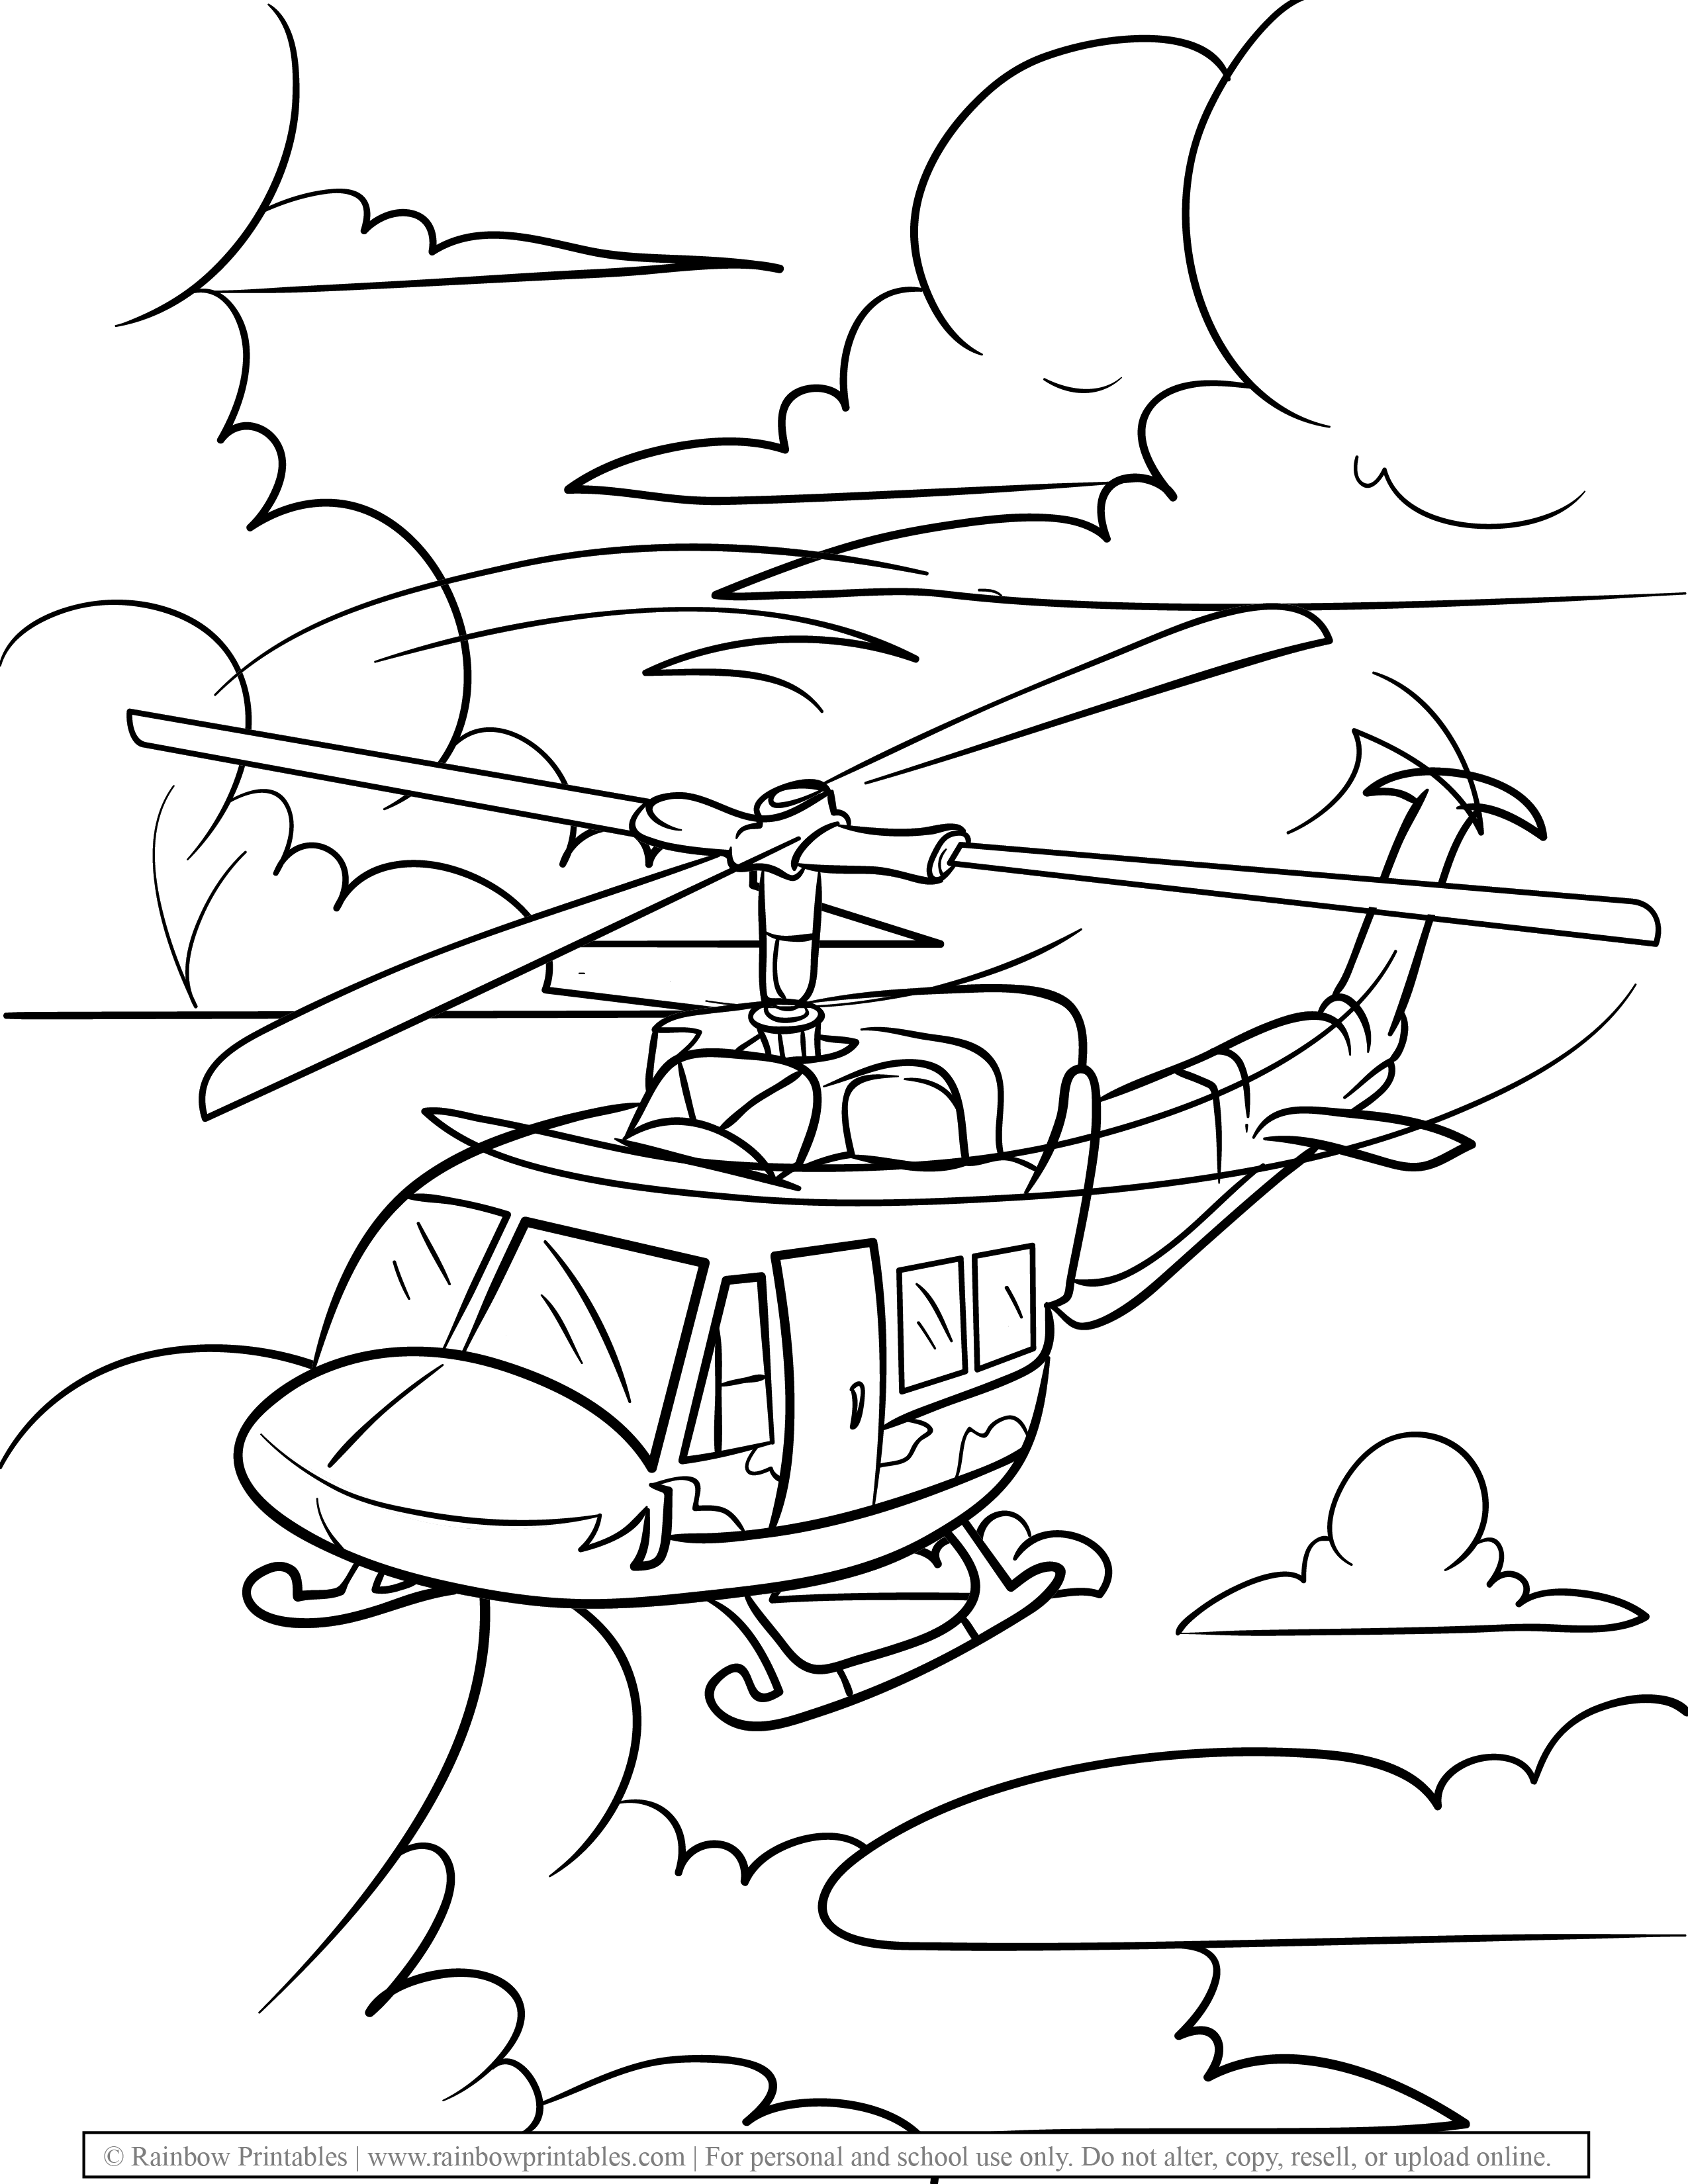 Military Helicopter in Skies Free Coloring Pages for Kids Drawing Activities Line Art Illustration-01